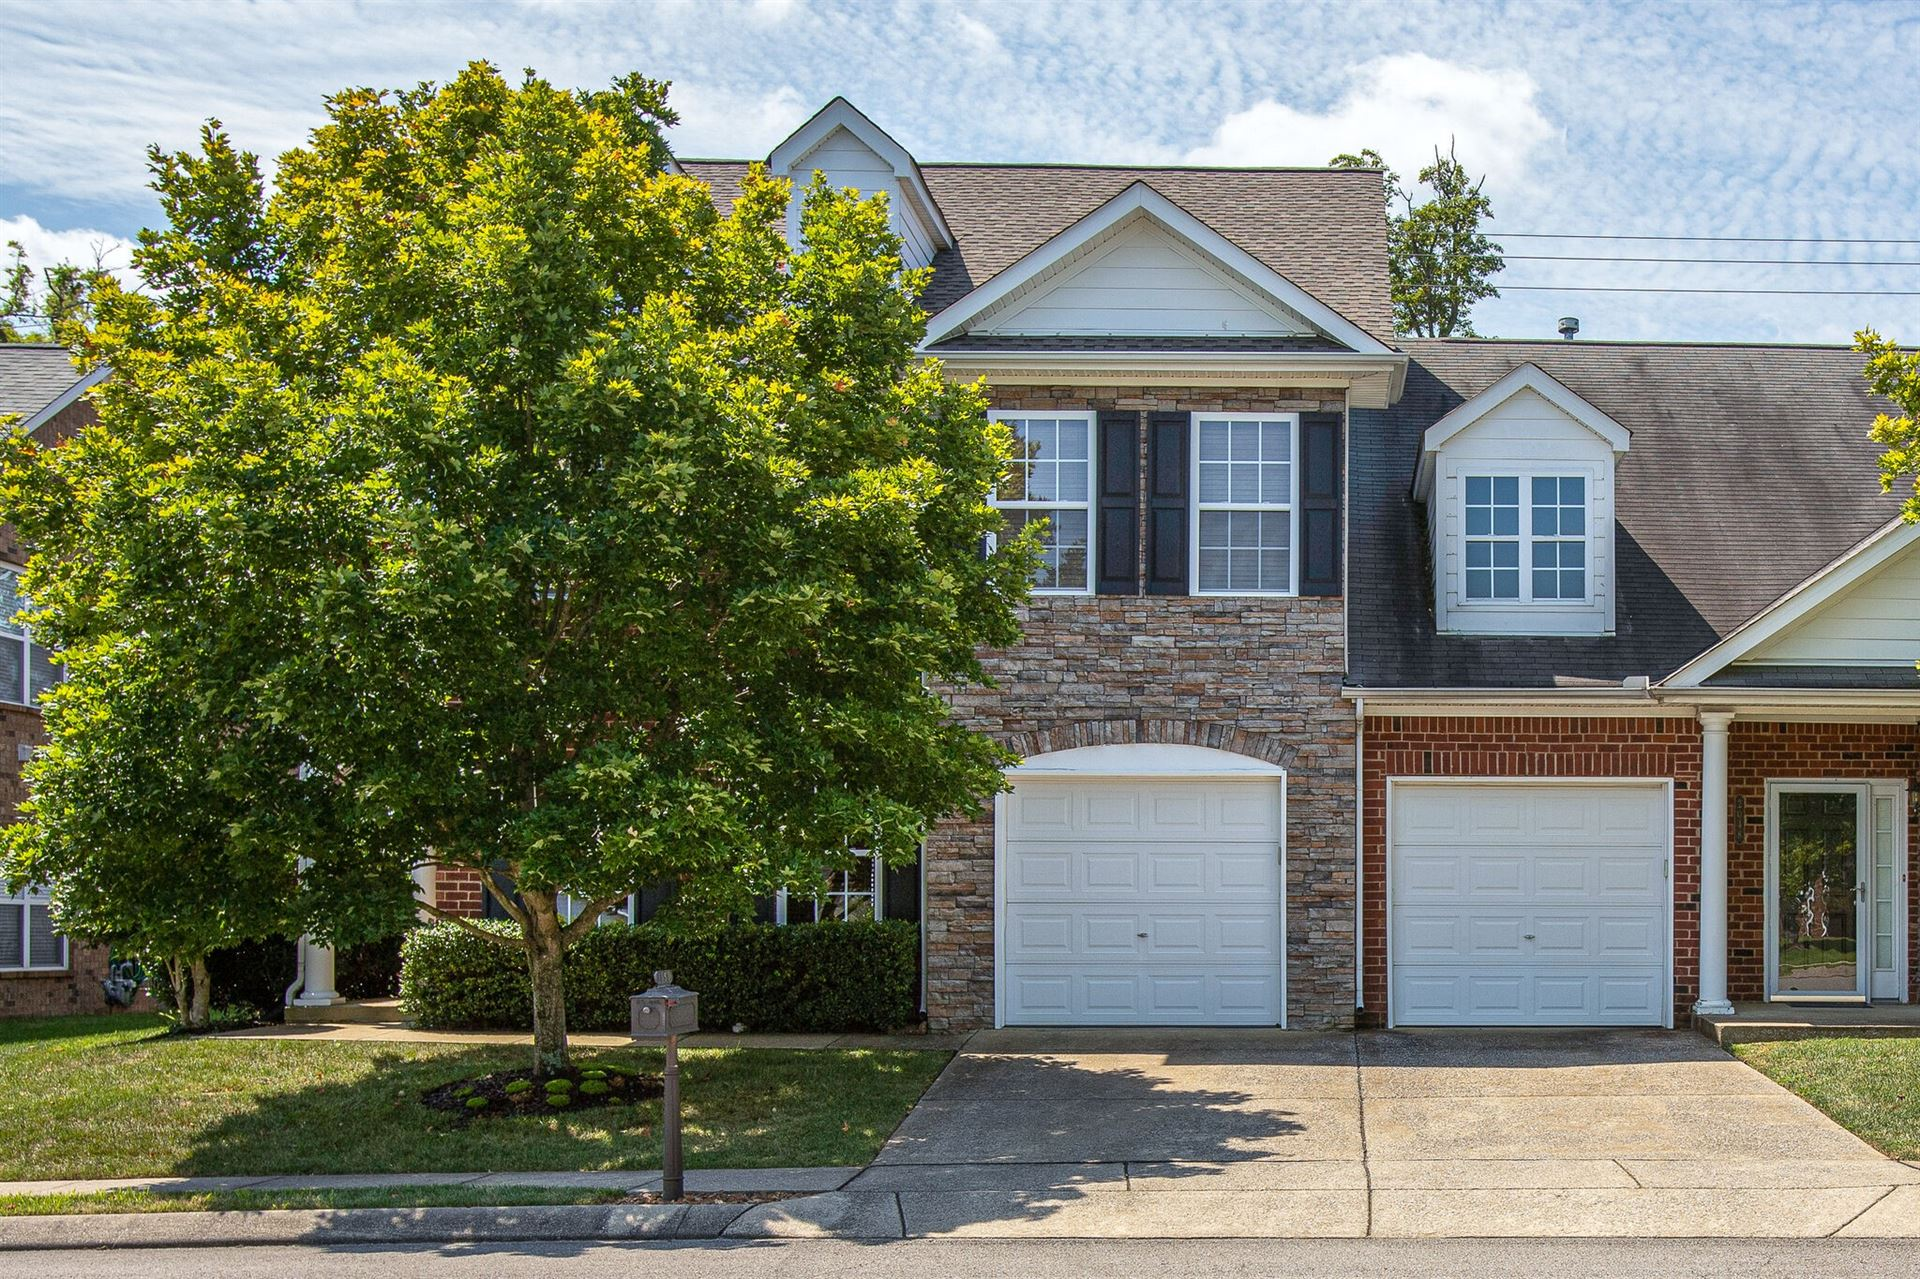 Photo of 2050 Morrison Ave, Spring Hill, TN 37174 (MLS # 2178116)